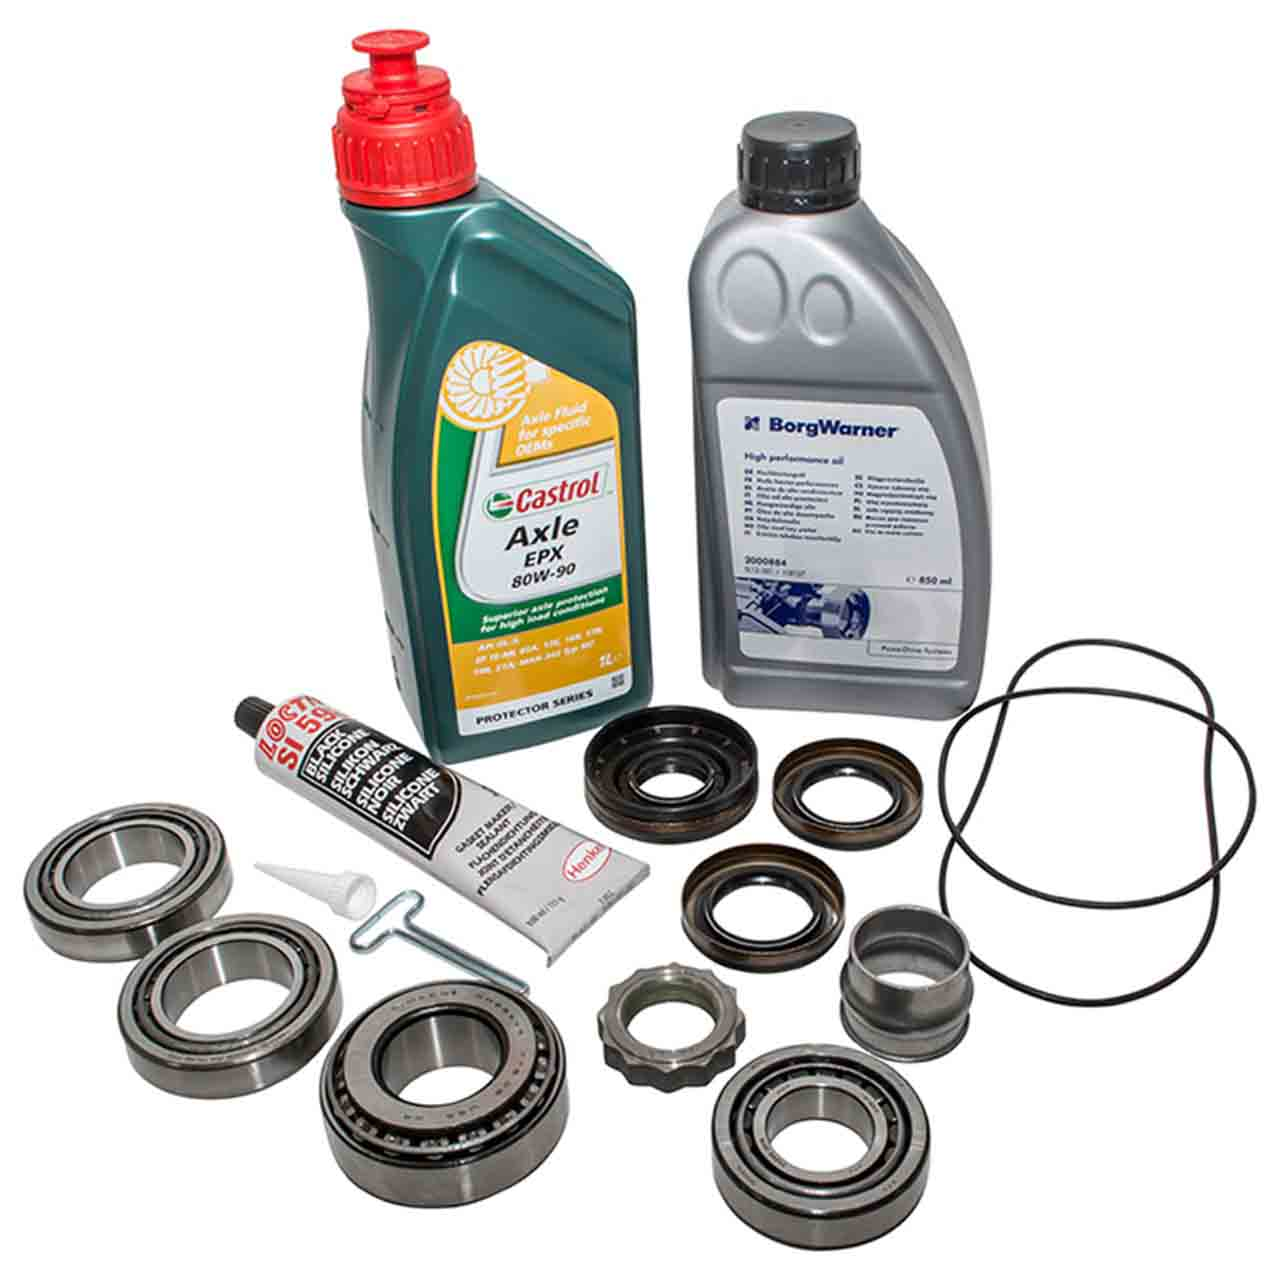 Freelander 2 Kit Revisione Del Cuscinetto Completo Differenziale Posteriore Olio GR2-05540